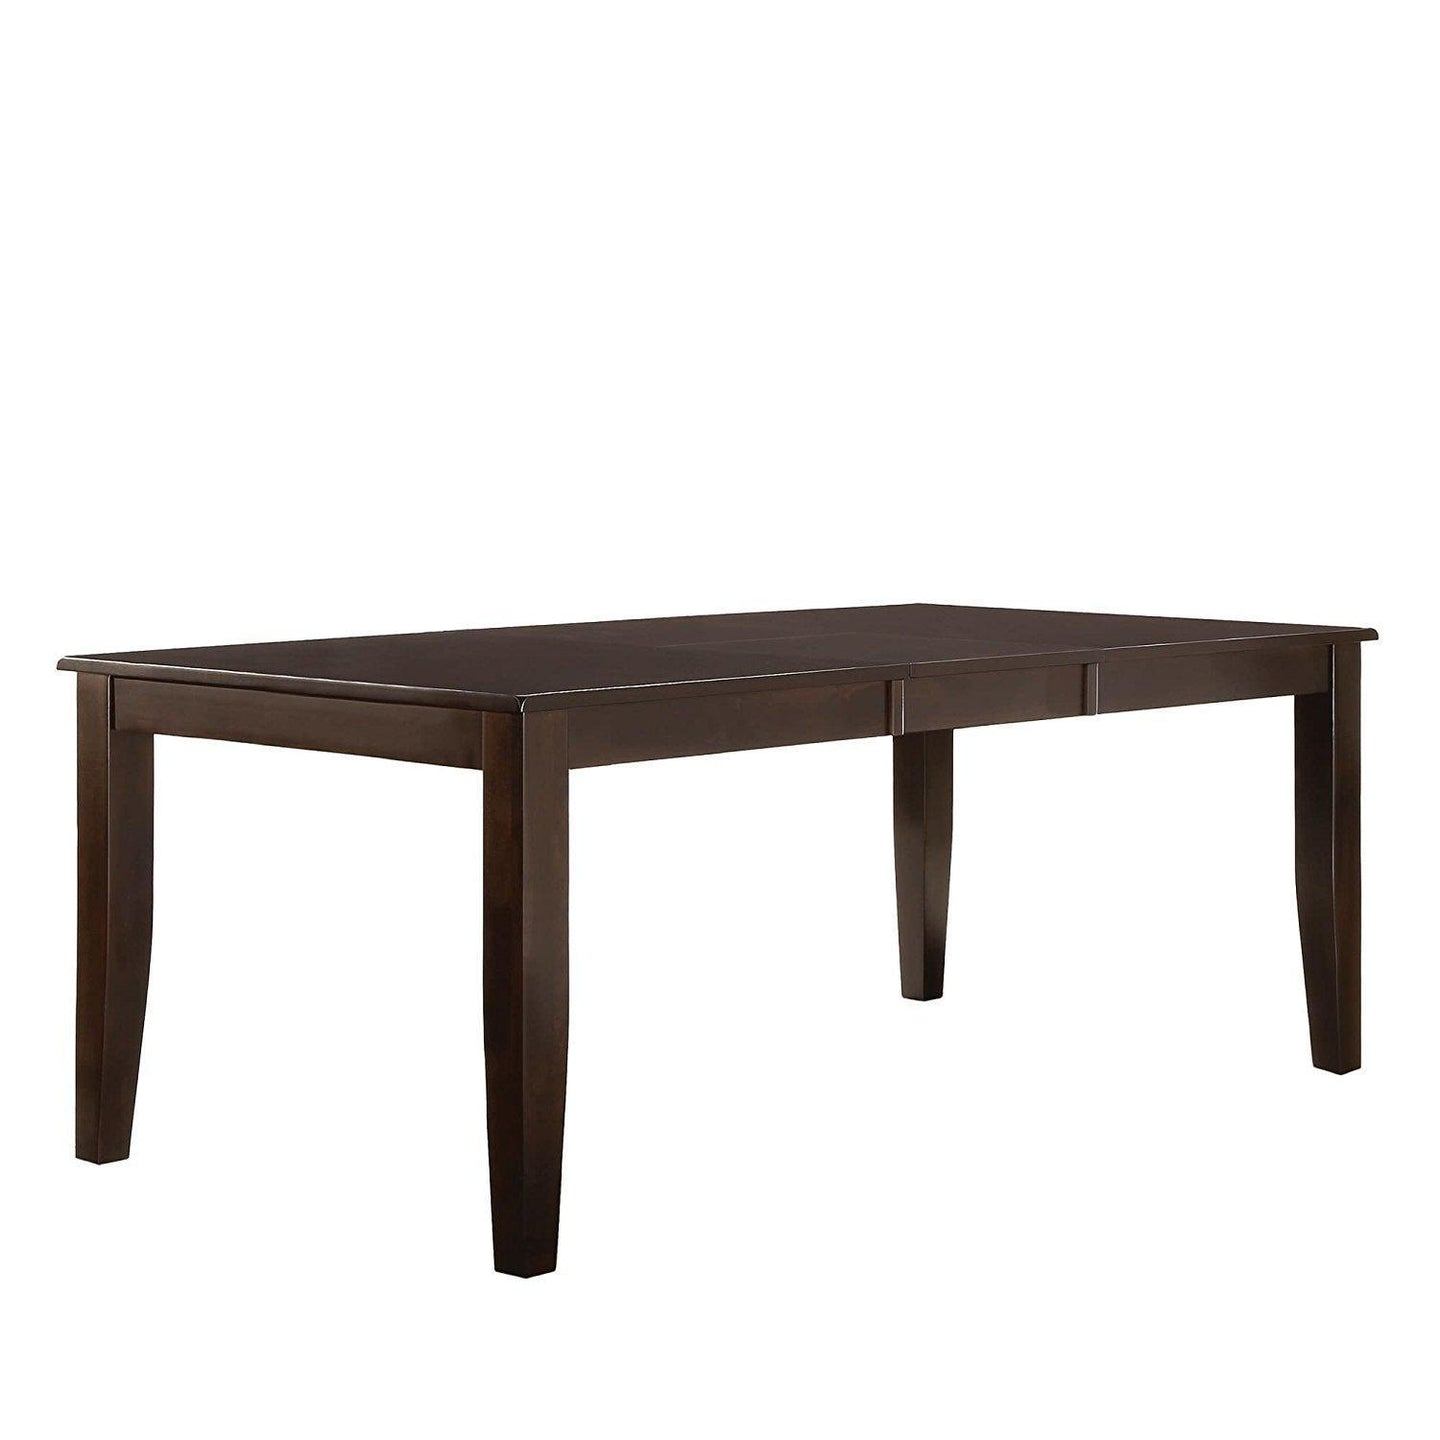 Homelegance 1372-78 Crown Point Casual Merlot Wood Dining Table